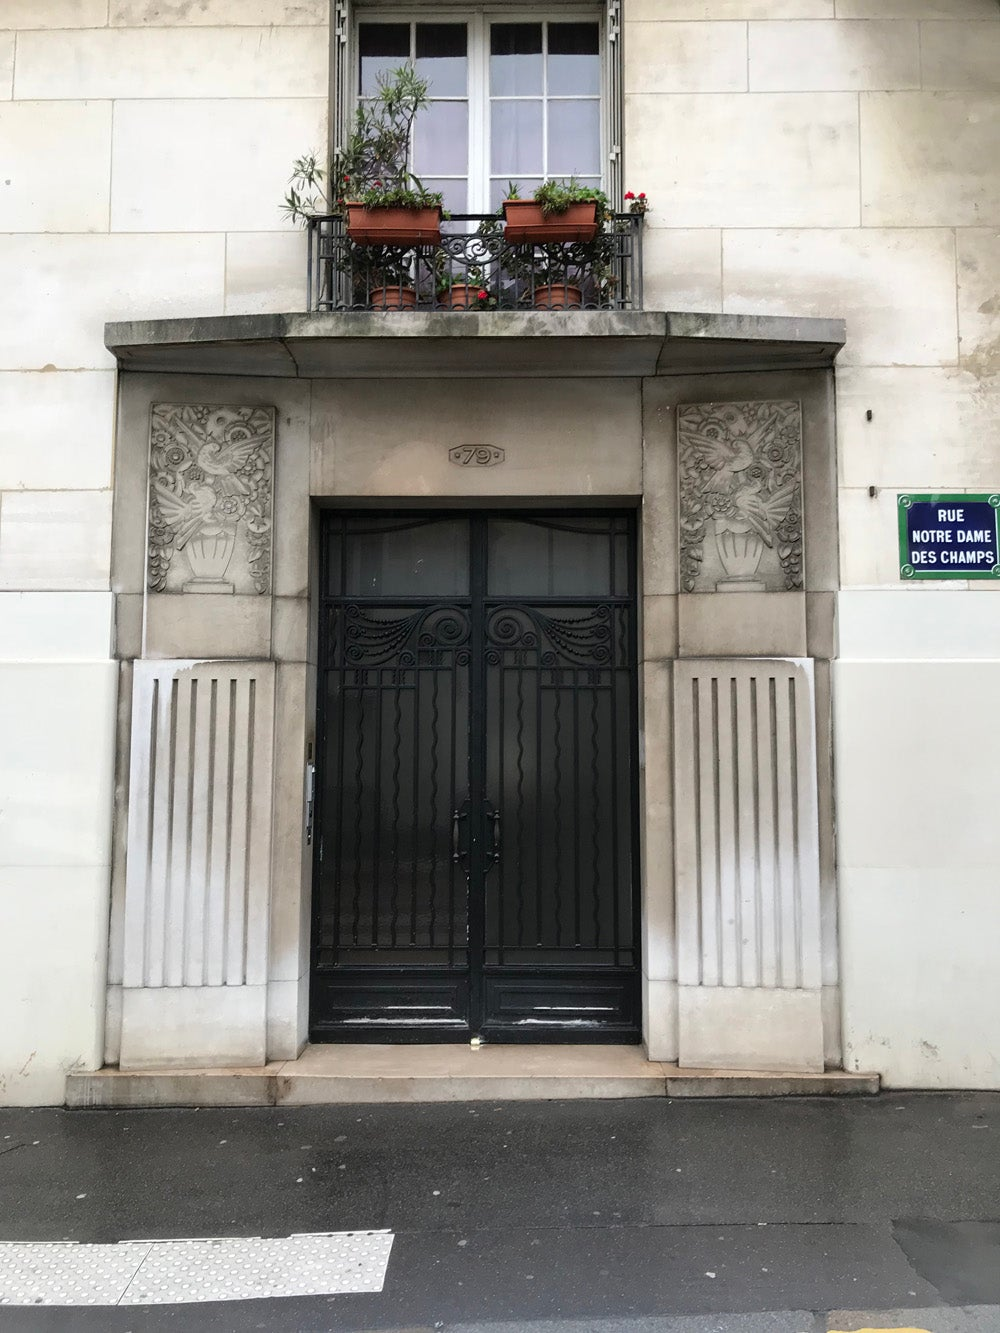 A doorway on Rue Notre Dame Des Champs